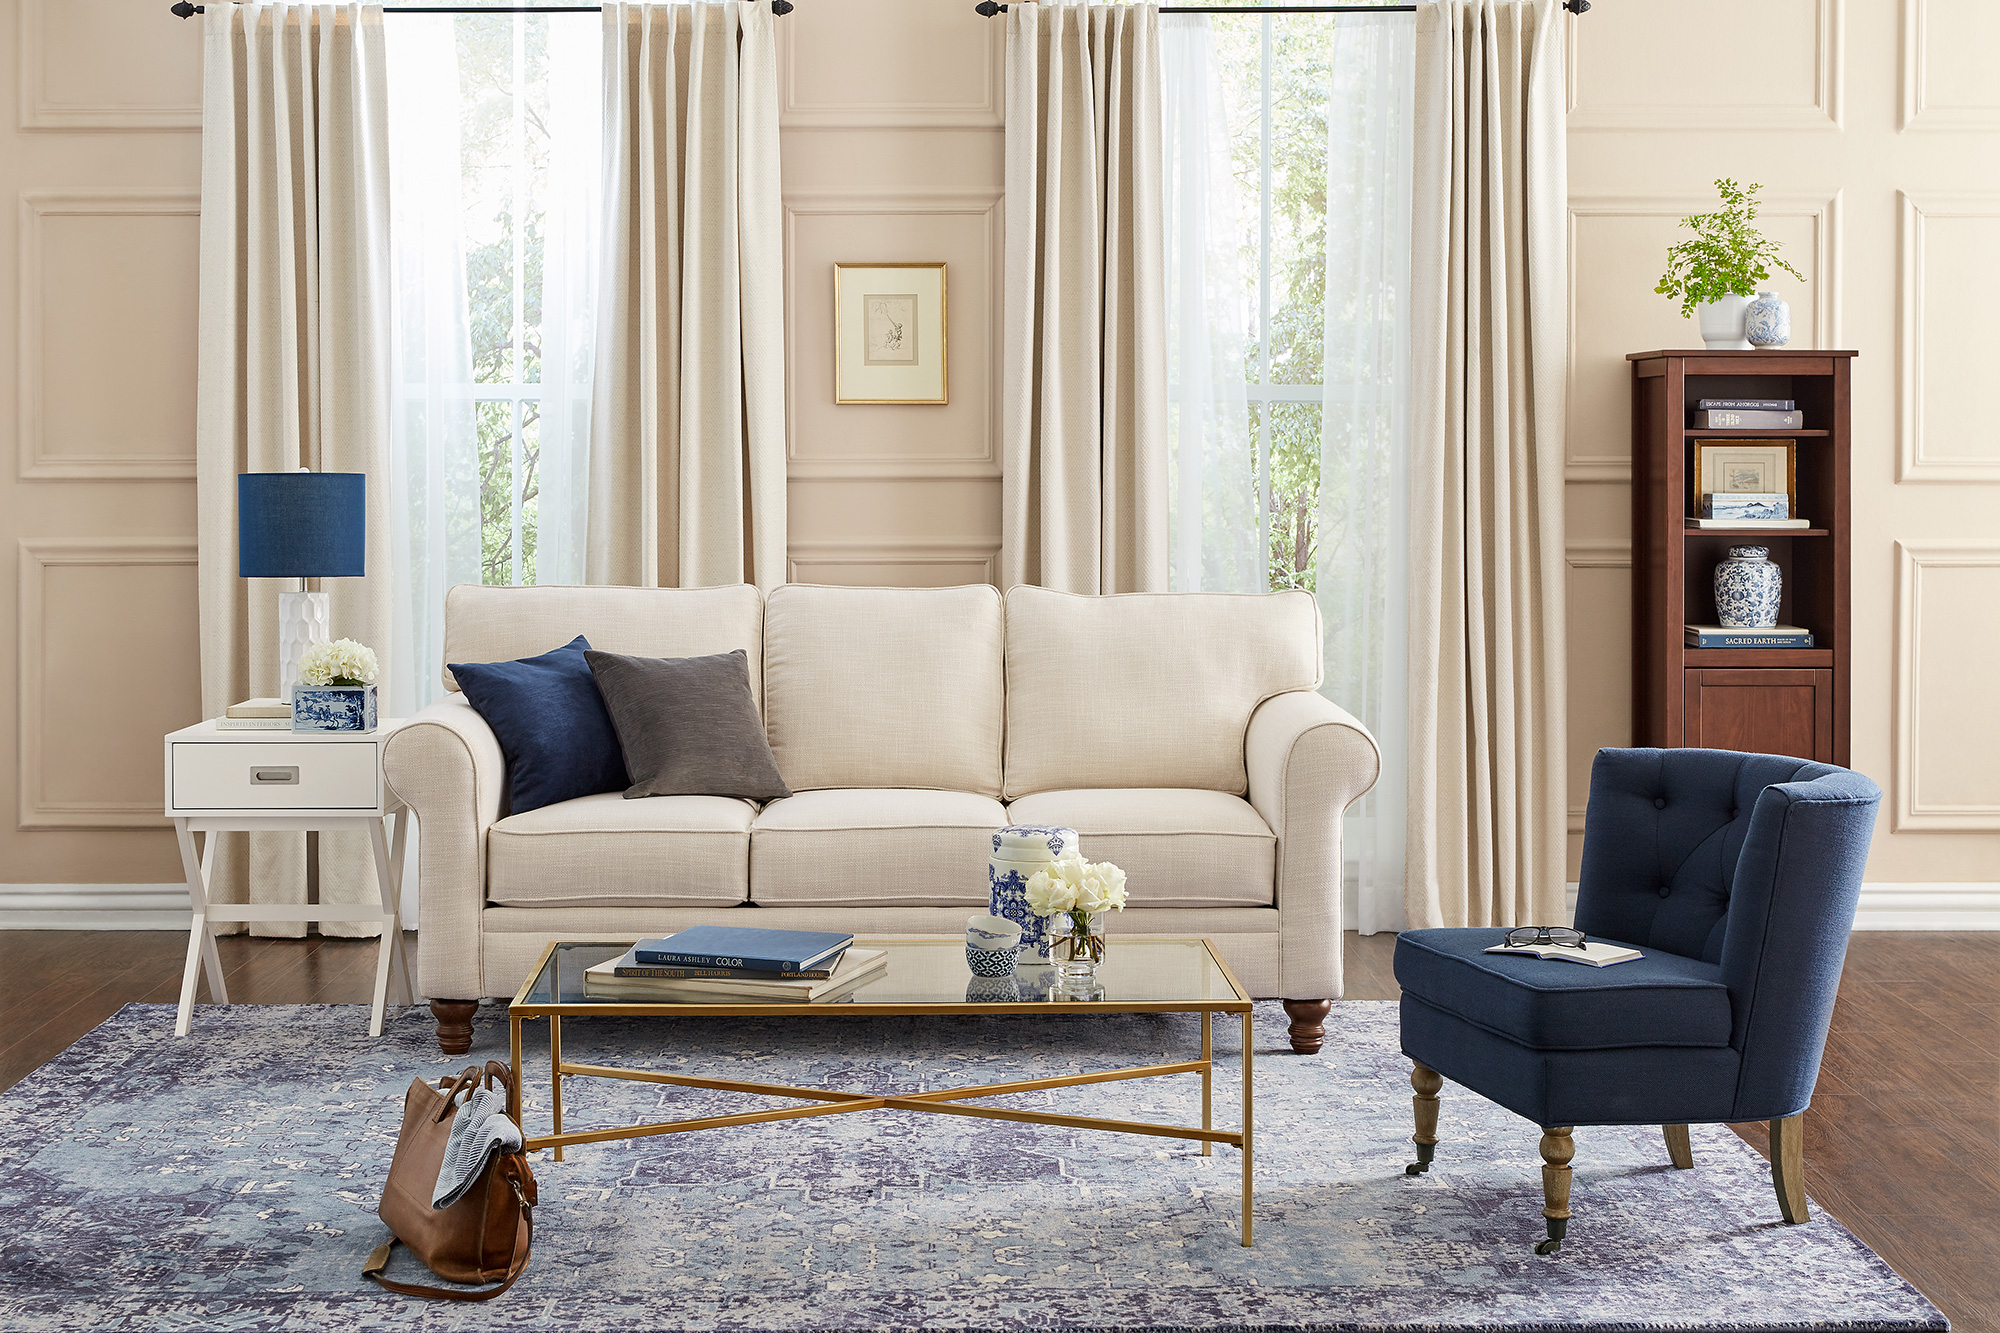 clarissa metal accent table ravenna home living launches its own furnishings collection take peek the affordable items bankers lamp tiffany stained glass pulaski sofa office floor